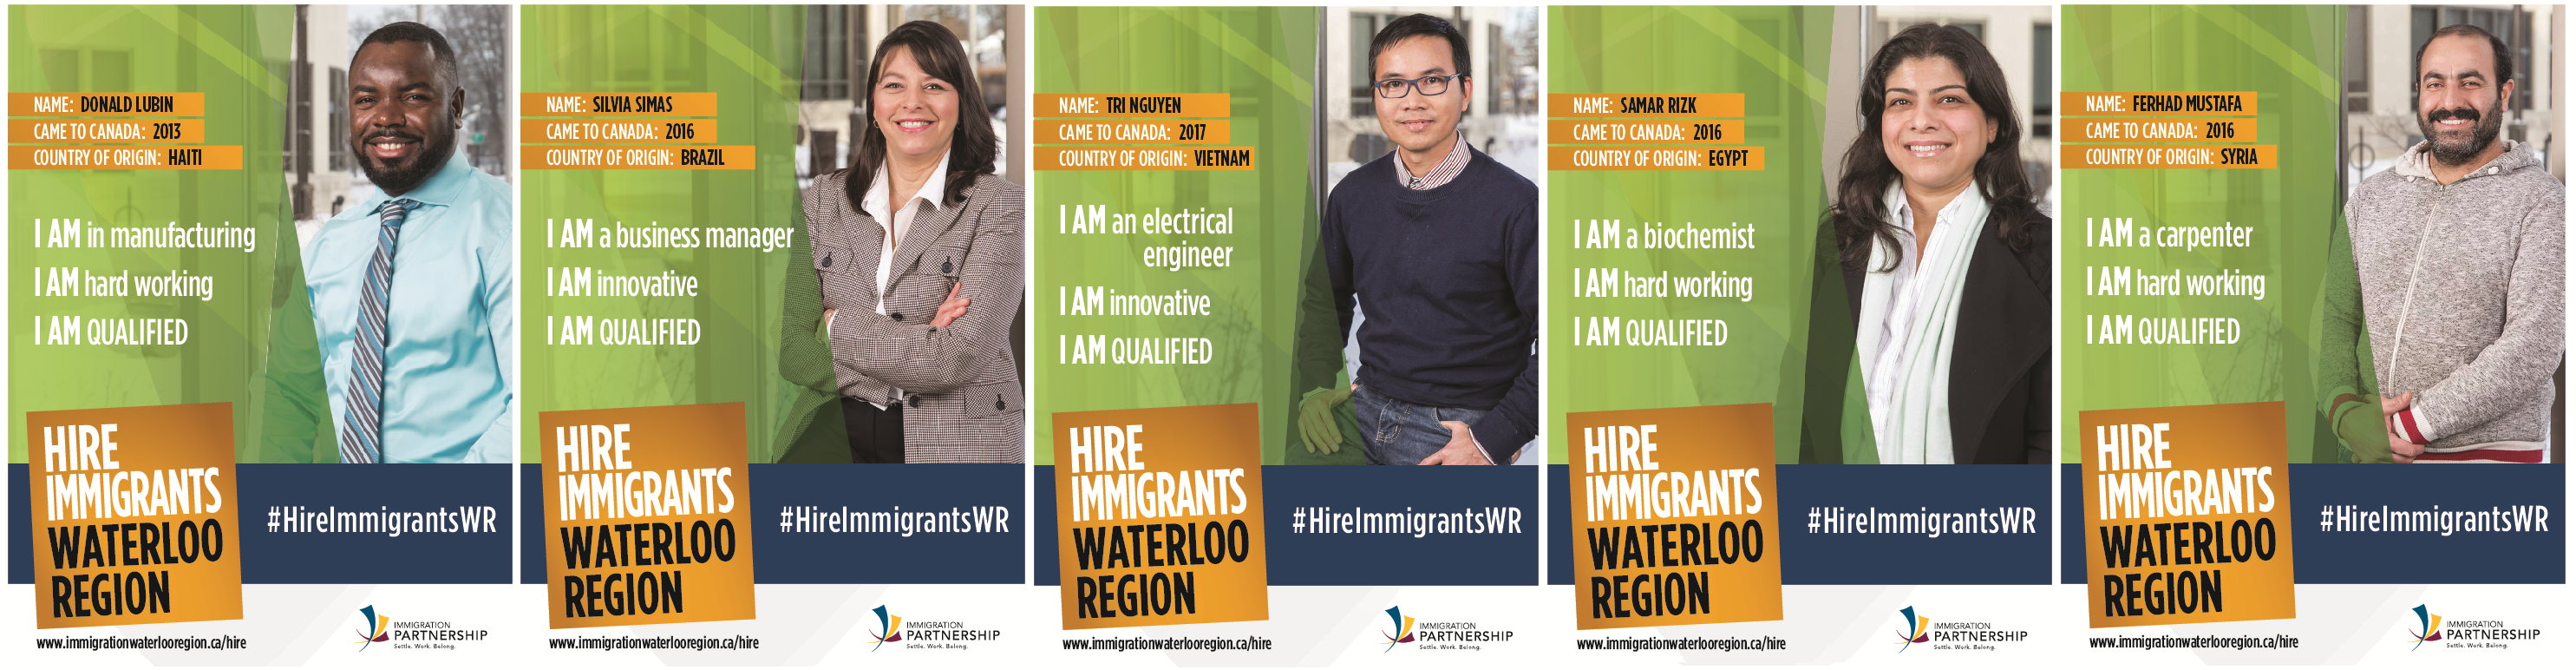 Hire Immigrants Waterloo Region Campaign Posters